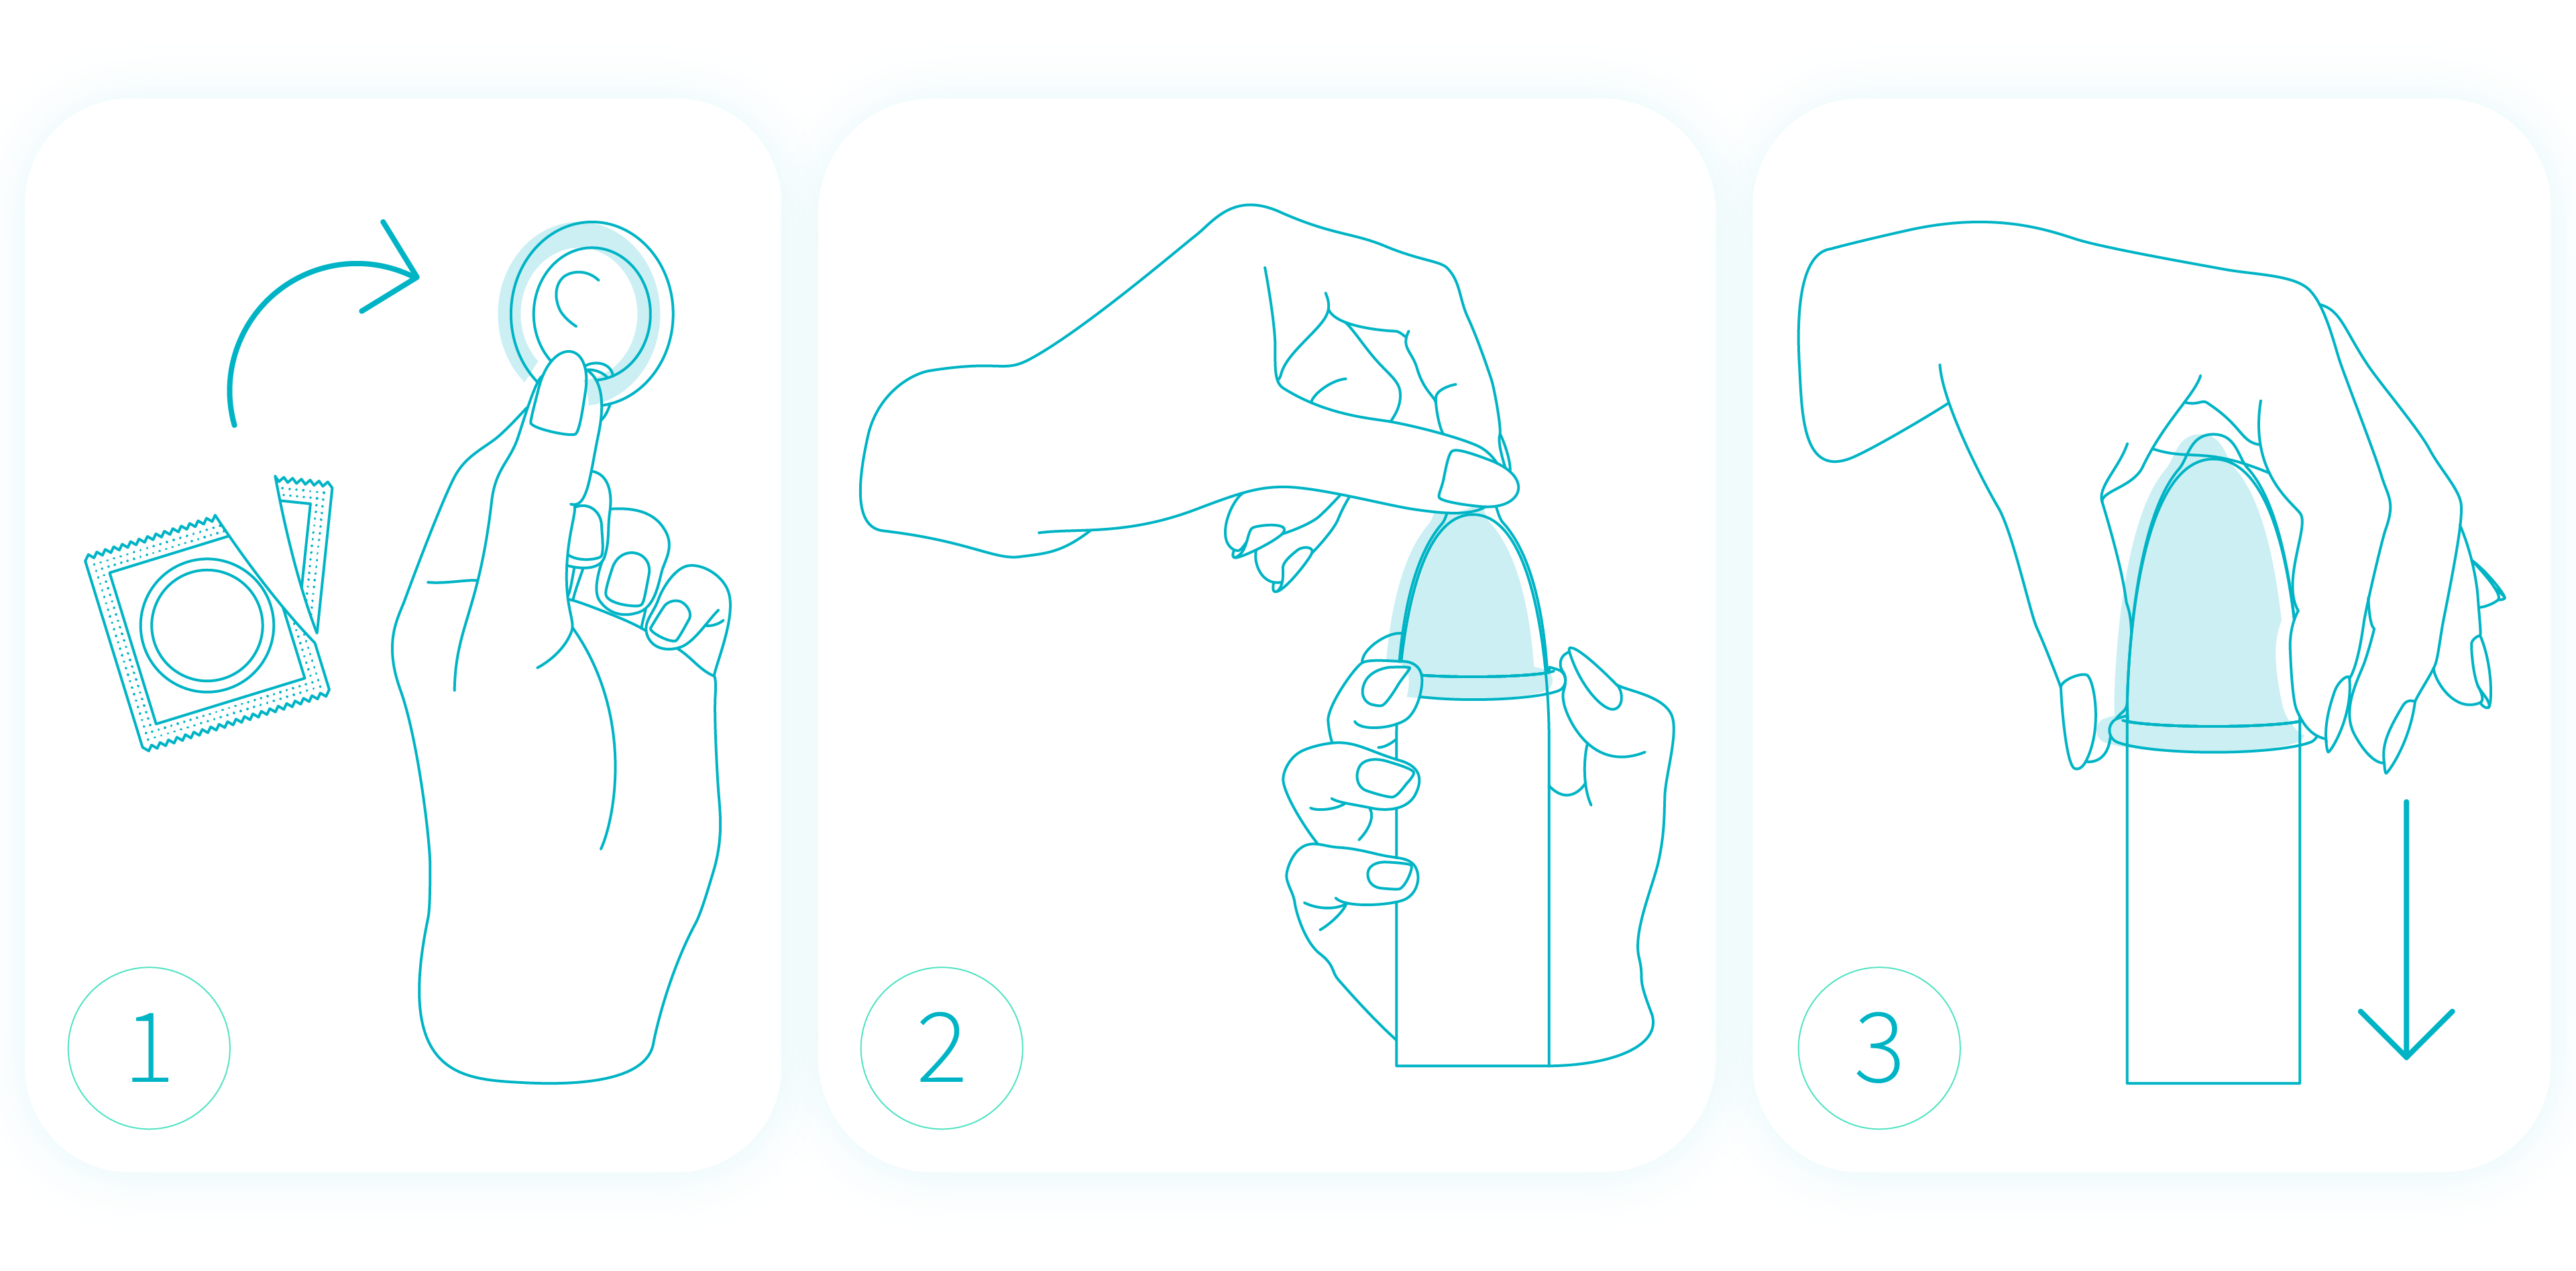 how-to-put-on-a-condom-letsgetchecked-illustration